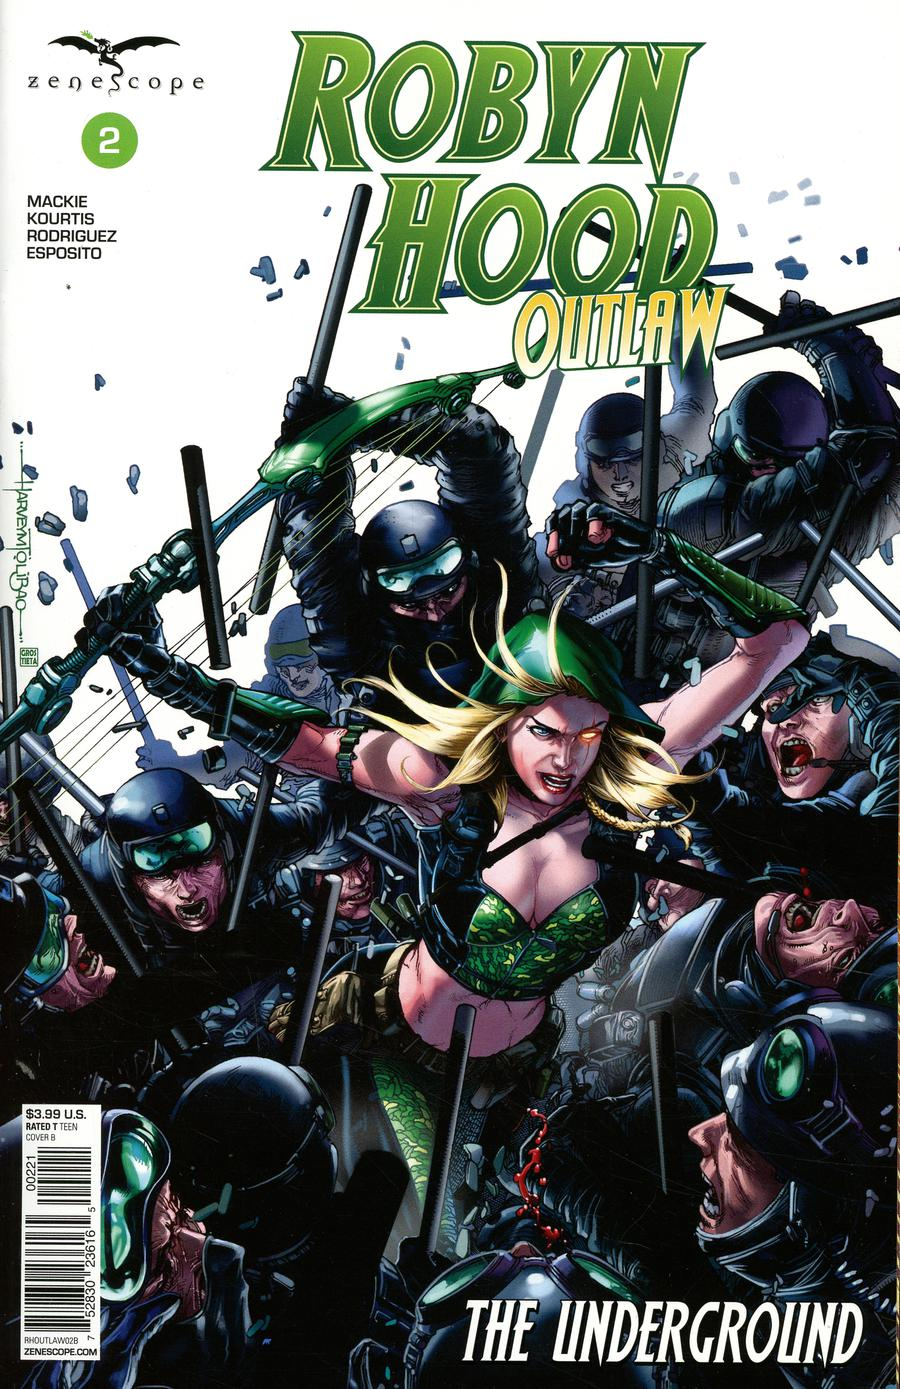 Grimm Fairy Tales Presents Robyn Hood Outlaw #2 Cover B Harvey Tolibao